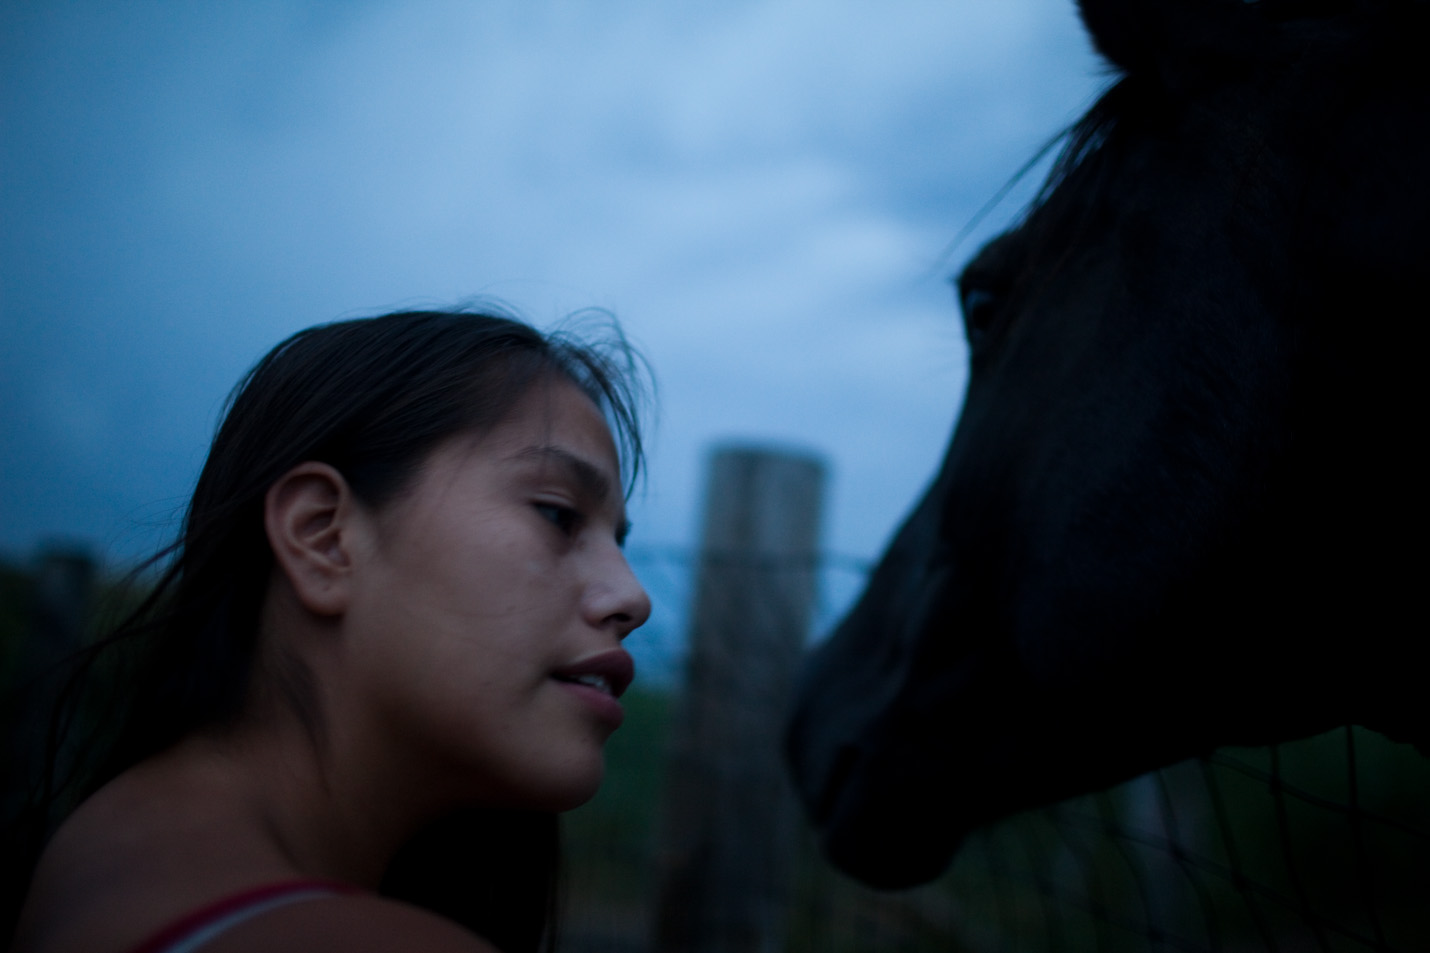 Alexis Oxendine pets one of the horses on Pine Ridge Reservation.  Many people use horses a primary means of transportation during the summer to get from place to place.